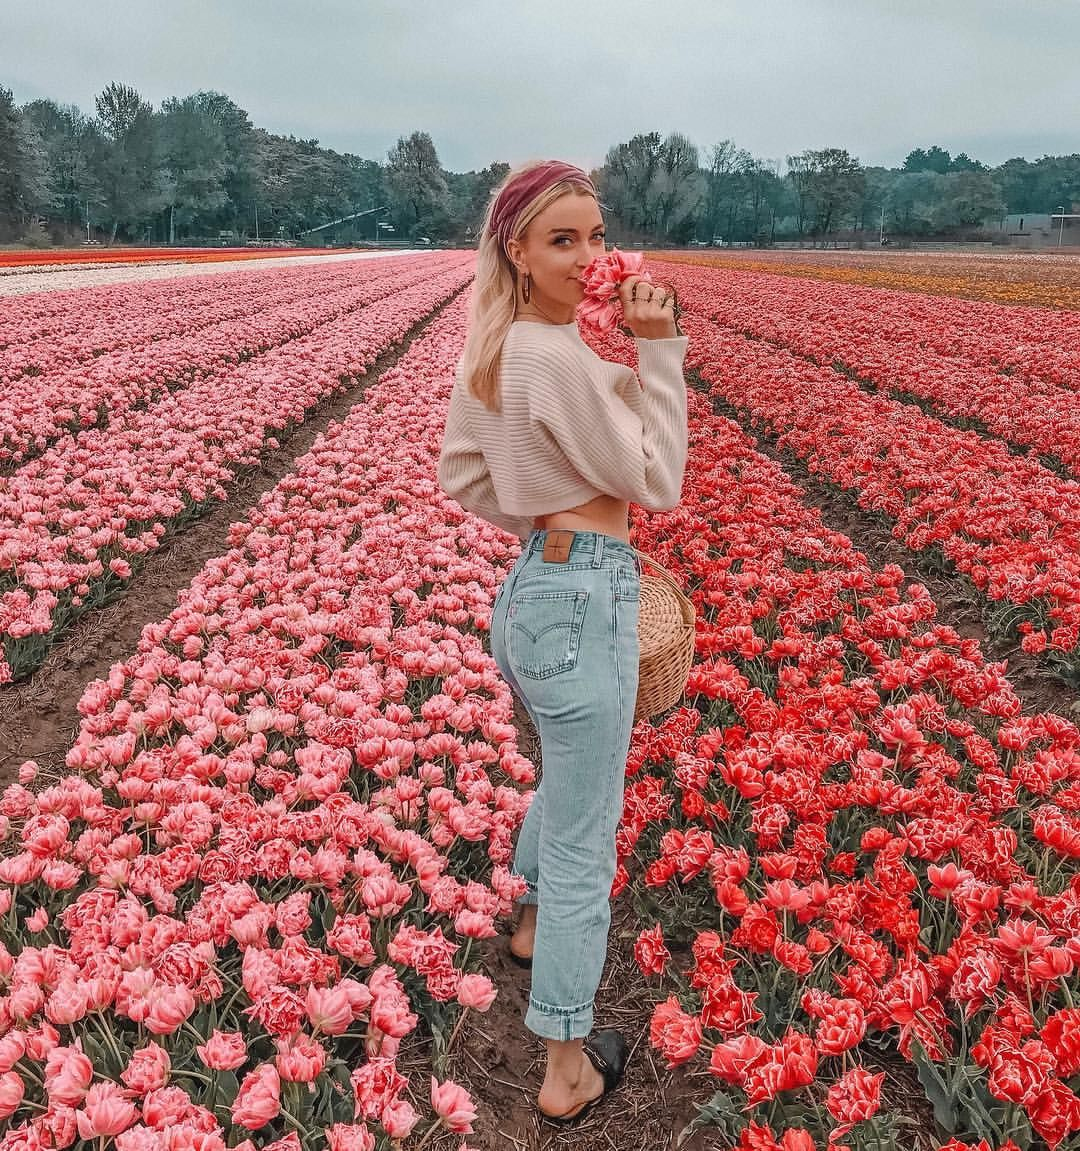 """NOOR on Instagram """"May the flowers remind you why the rain was so neccessary 💫"""" is part of Photography inspo - 95k Likes, 1,352 Comments  NOOR (@queenofjetlags) on Instagram """"May the flowers remind you why the rain was so neccessary 💫"""""""